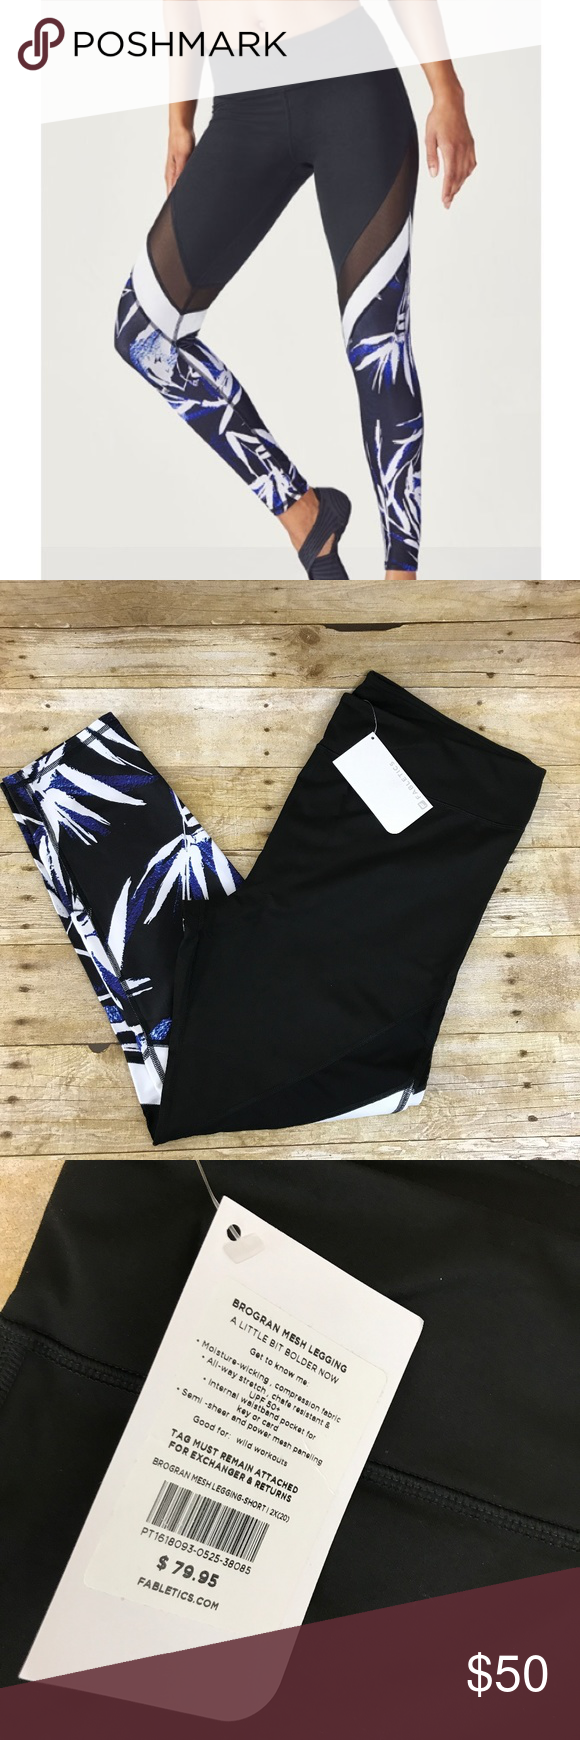 87a4a4fa24d2b Fabletics Brogran Mesh Leggings New with tags. Chafe-Resistant  Moisture-Wicking All-way Stretch Breathable Hidden Pockets UPF Protection  Waist 38 ...